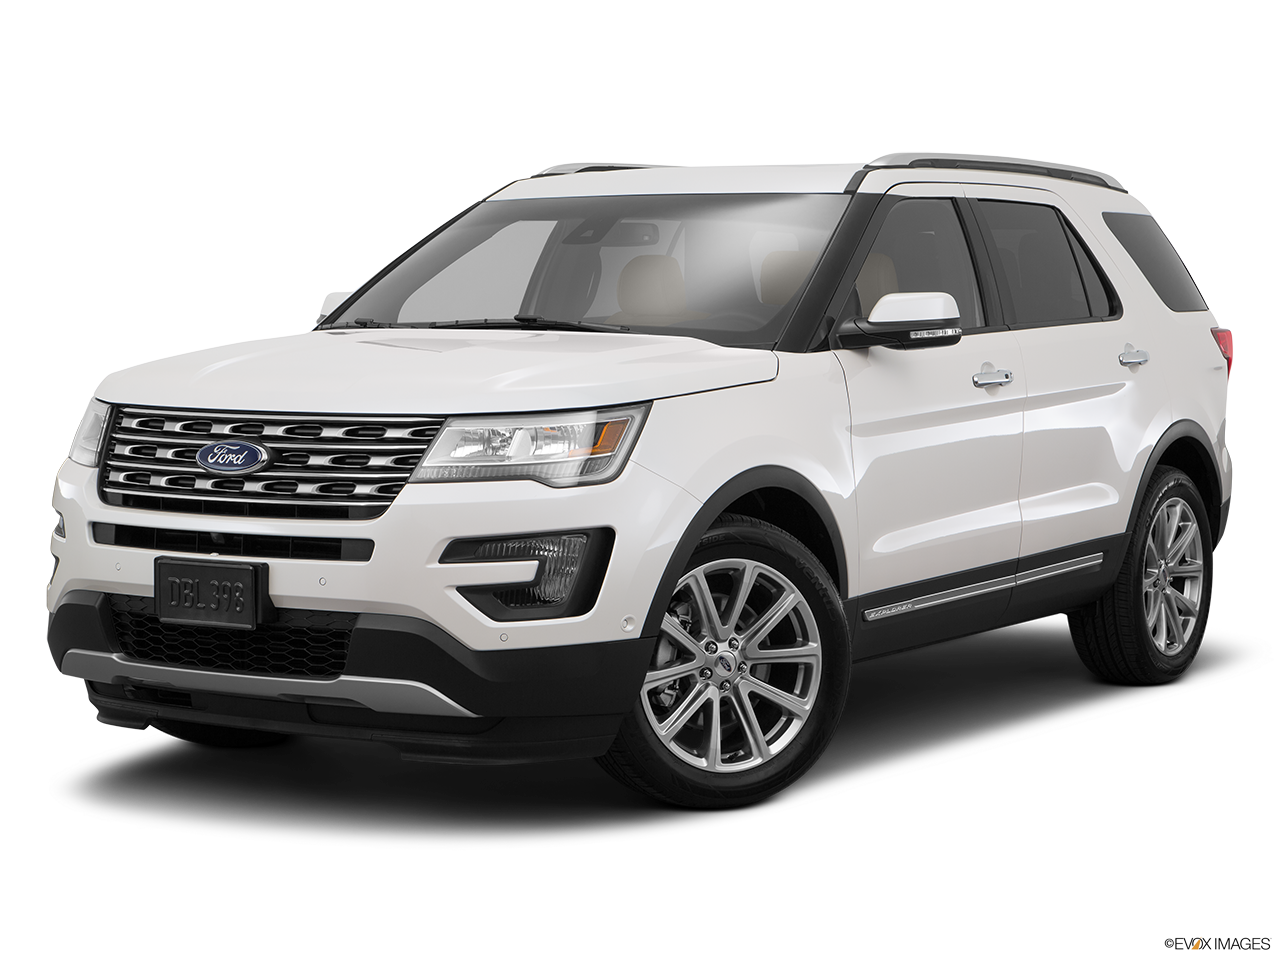 Test Drive A 2016 Ford Explorer at Huntington Beach Ford in Huntington Beach